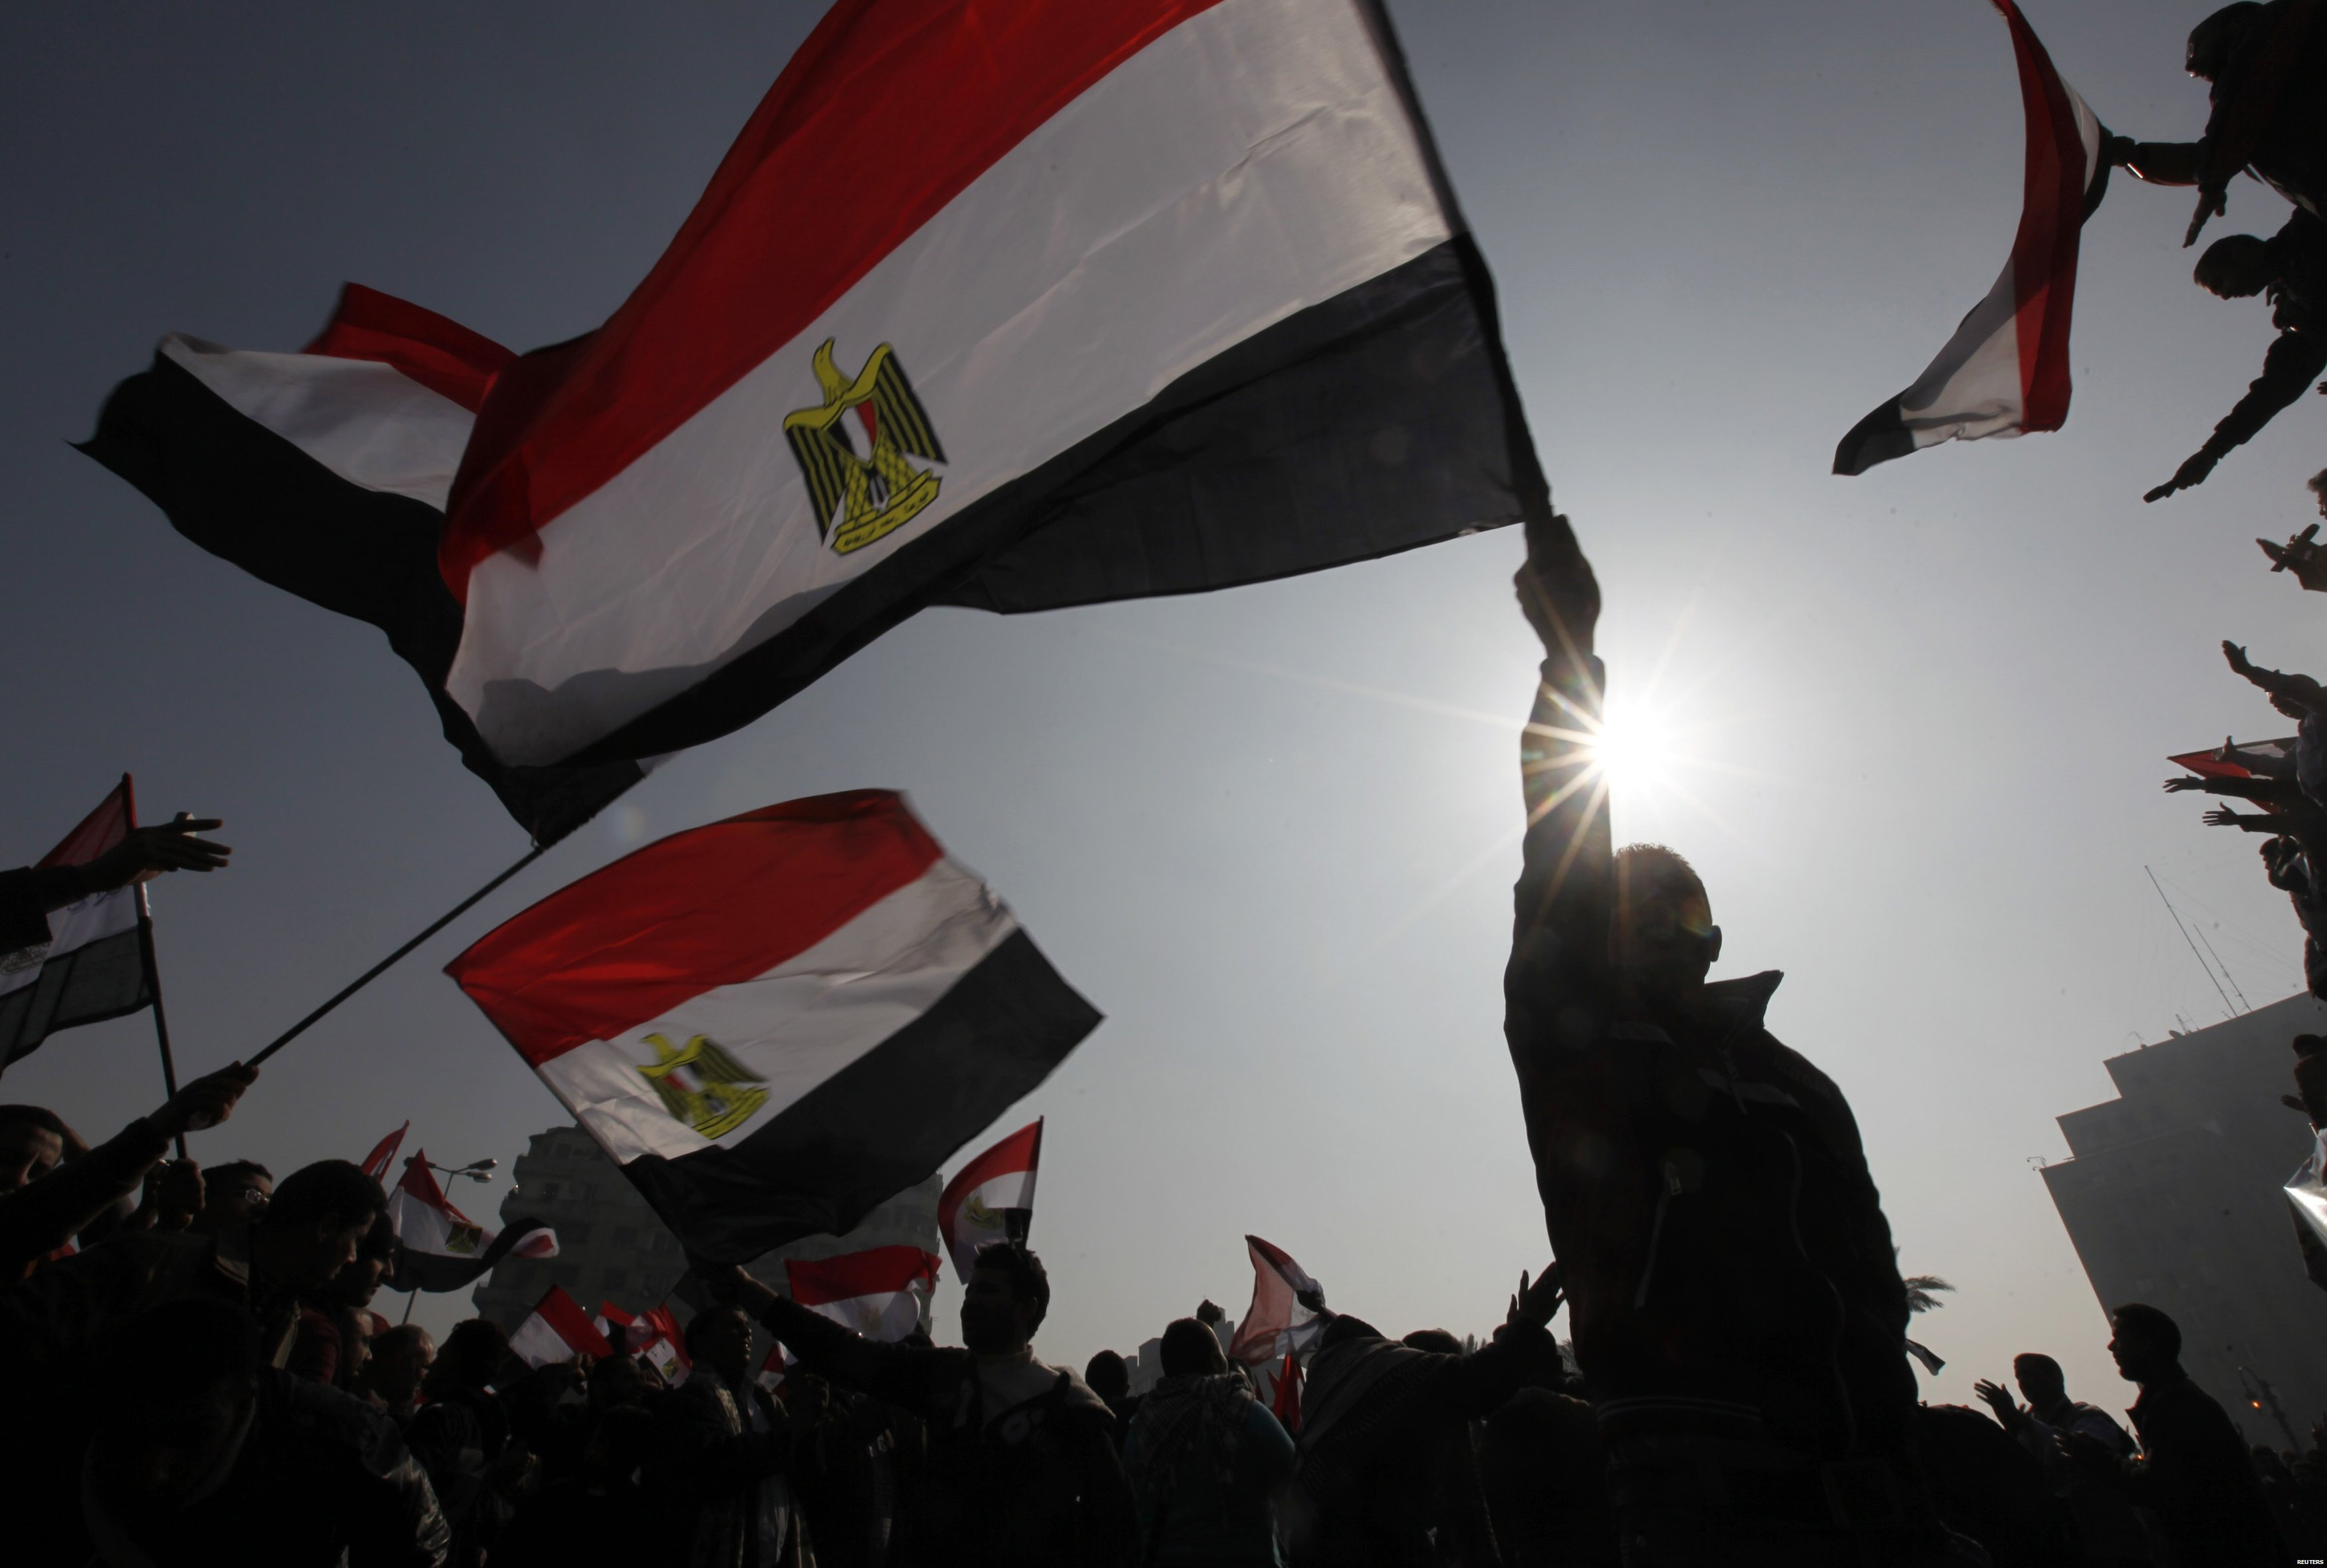 essay about 25 january egyptian revolution Subject terms 25 january egyptian revolution, social media, egypt  102  jeffery c alexander, reformative revolution in egypt: an essay in cultural.